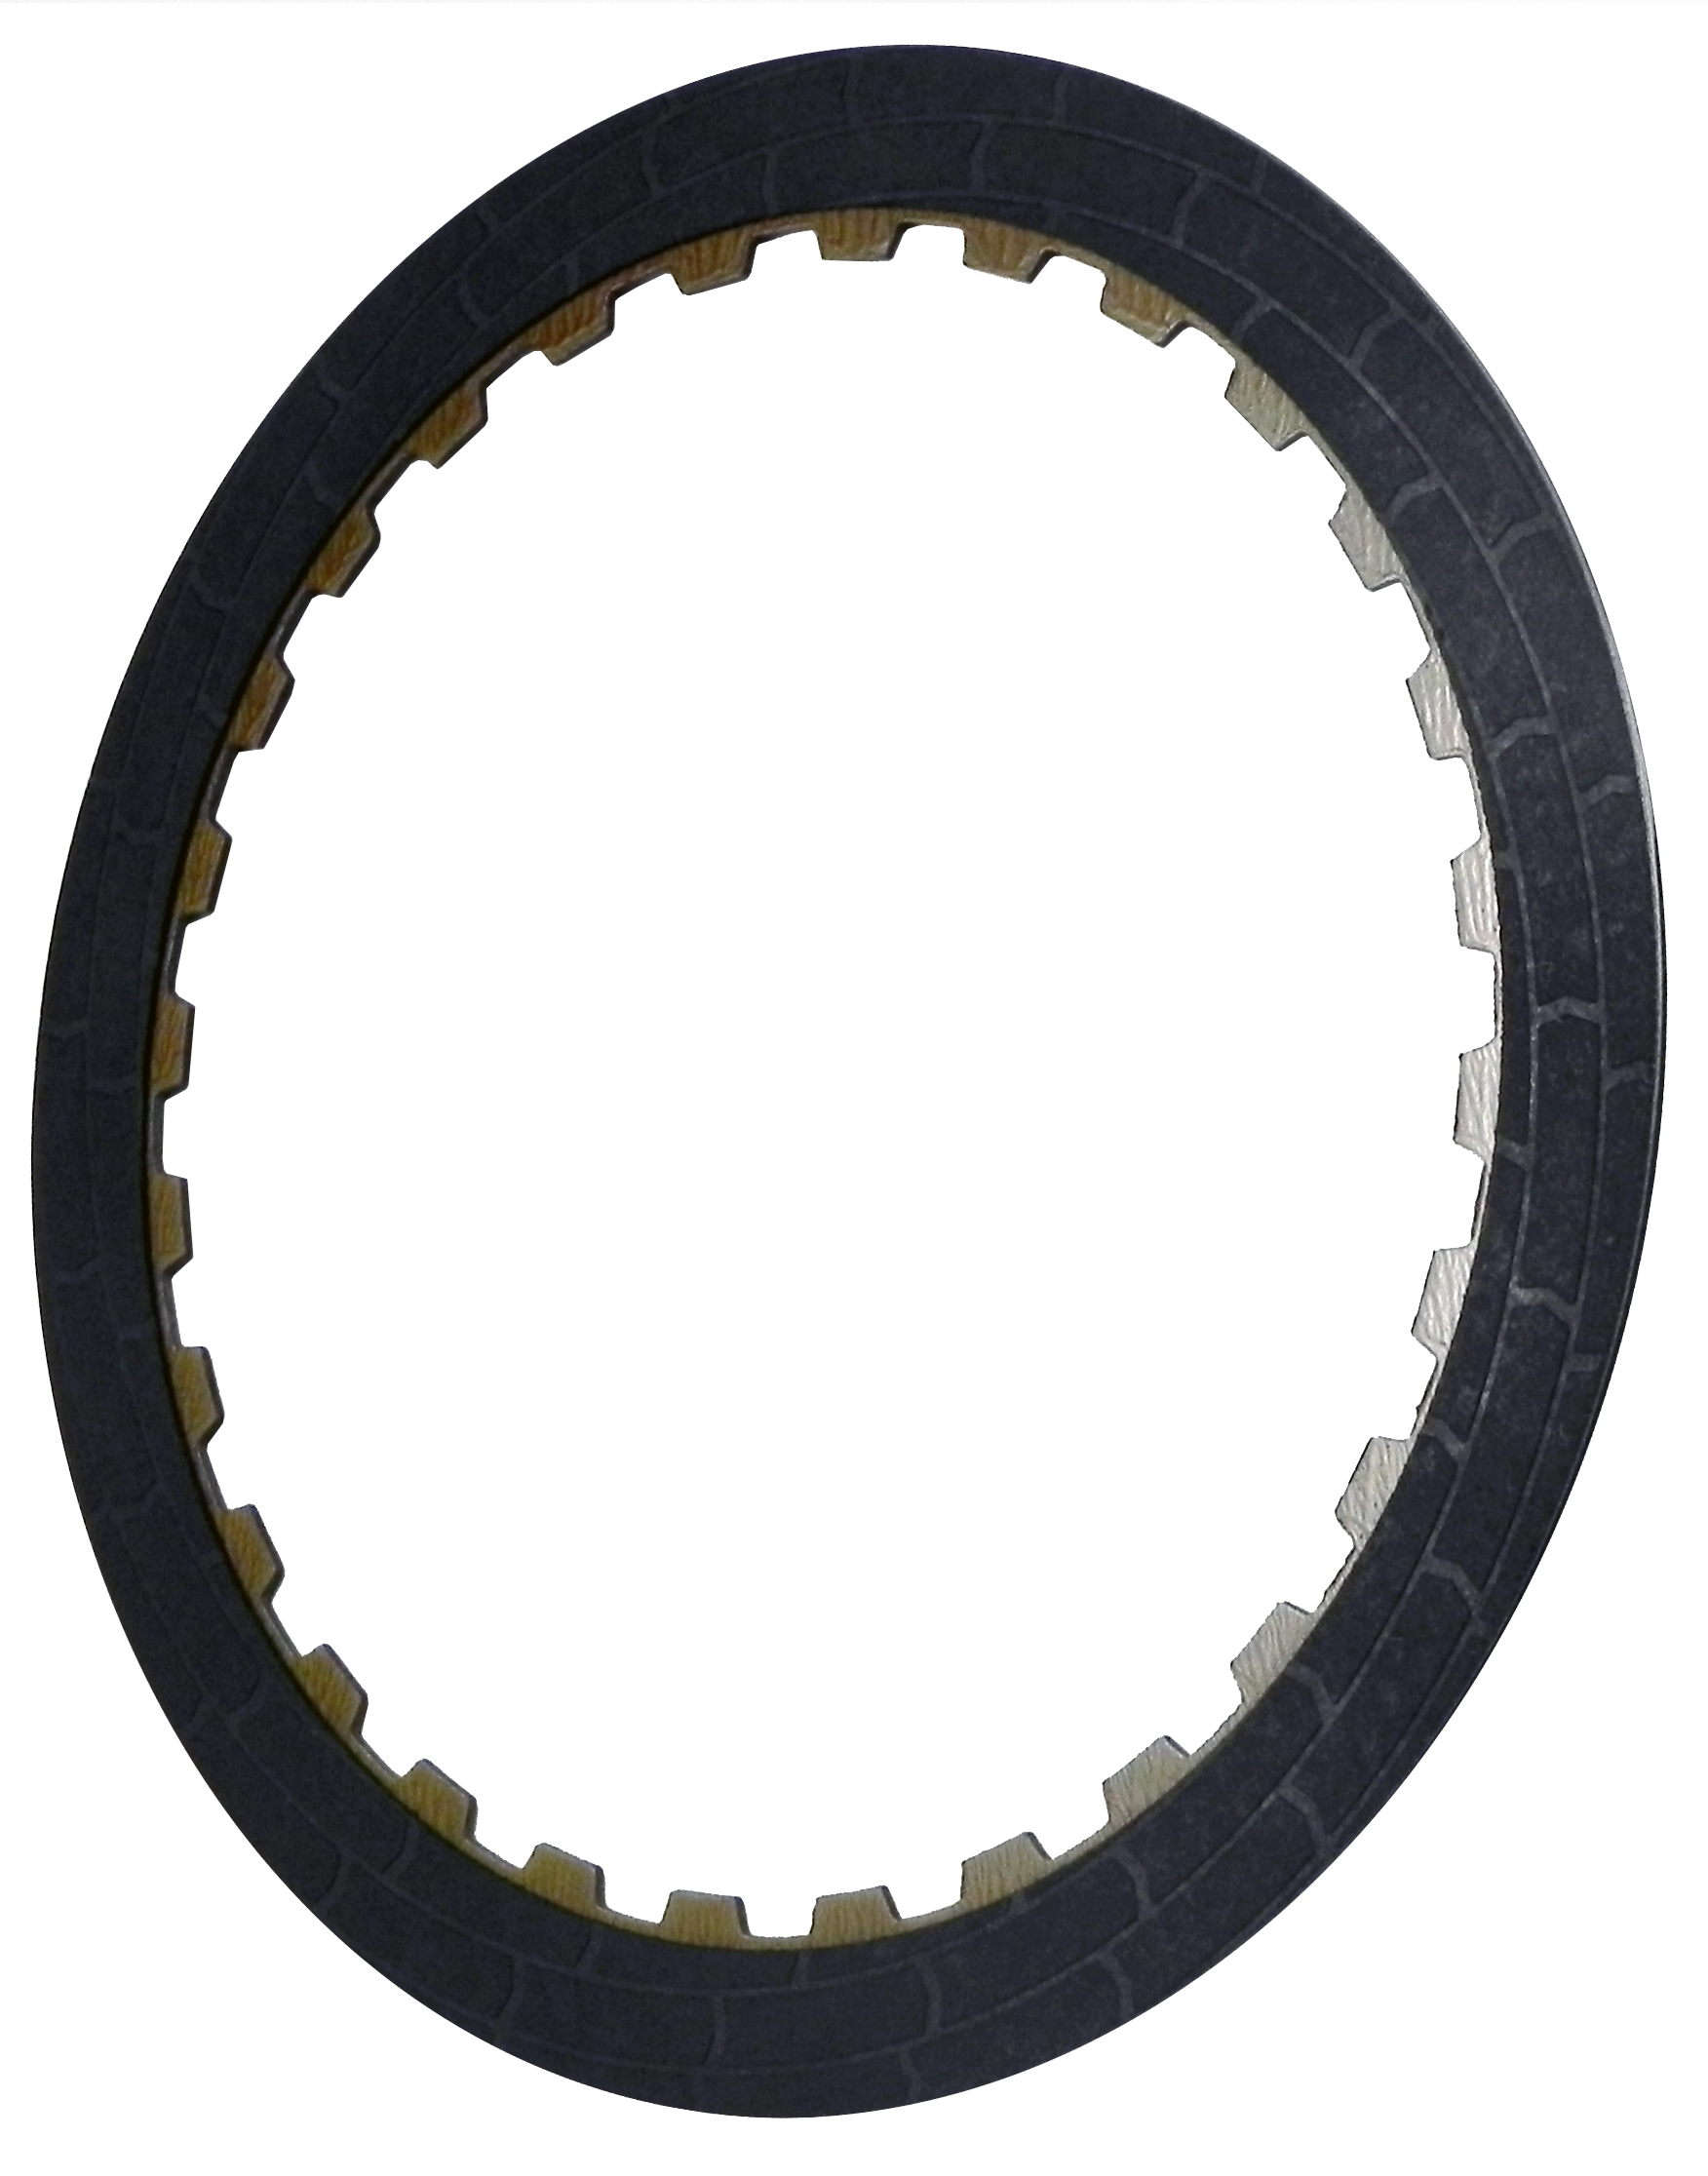 RH558210 | 2003-ON Friction Clutch Plate (HT) Hybrid Technology Underdrive, Overdrive, Reverse Proprietary High Energy (HT)